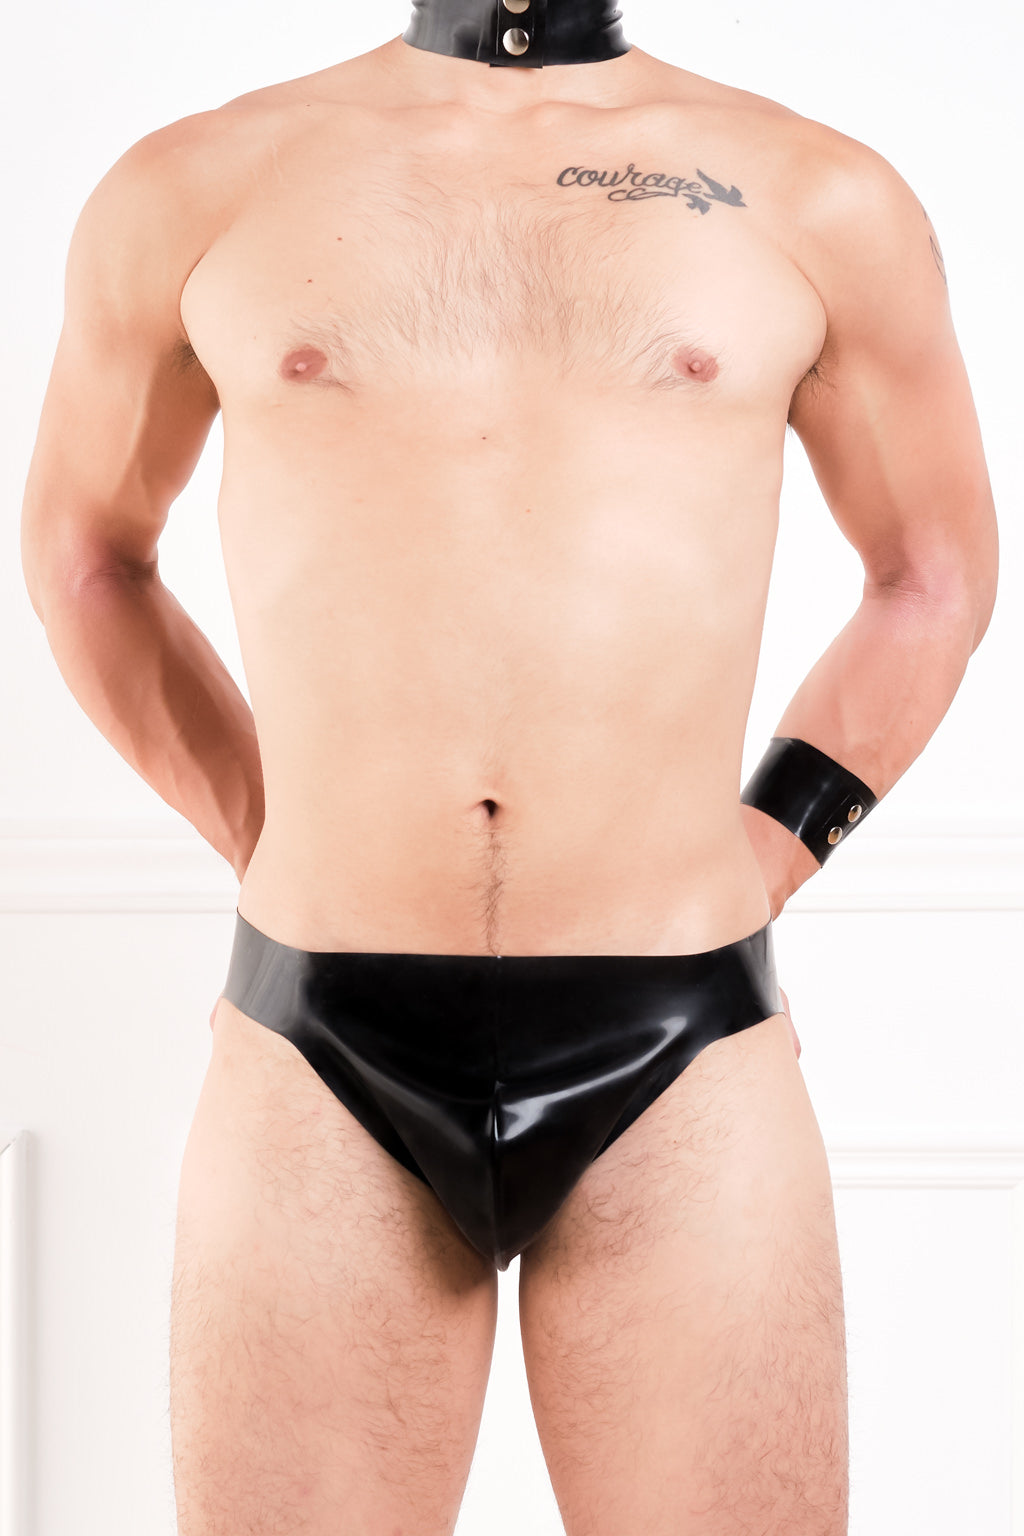 A man wearing a black latex thong.